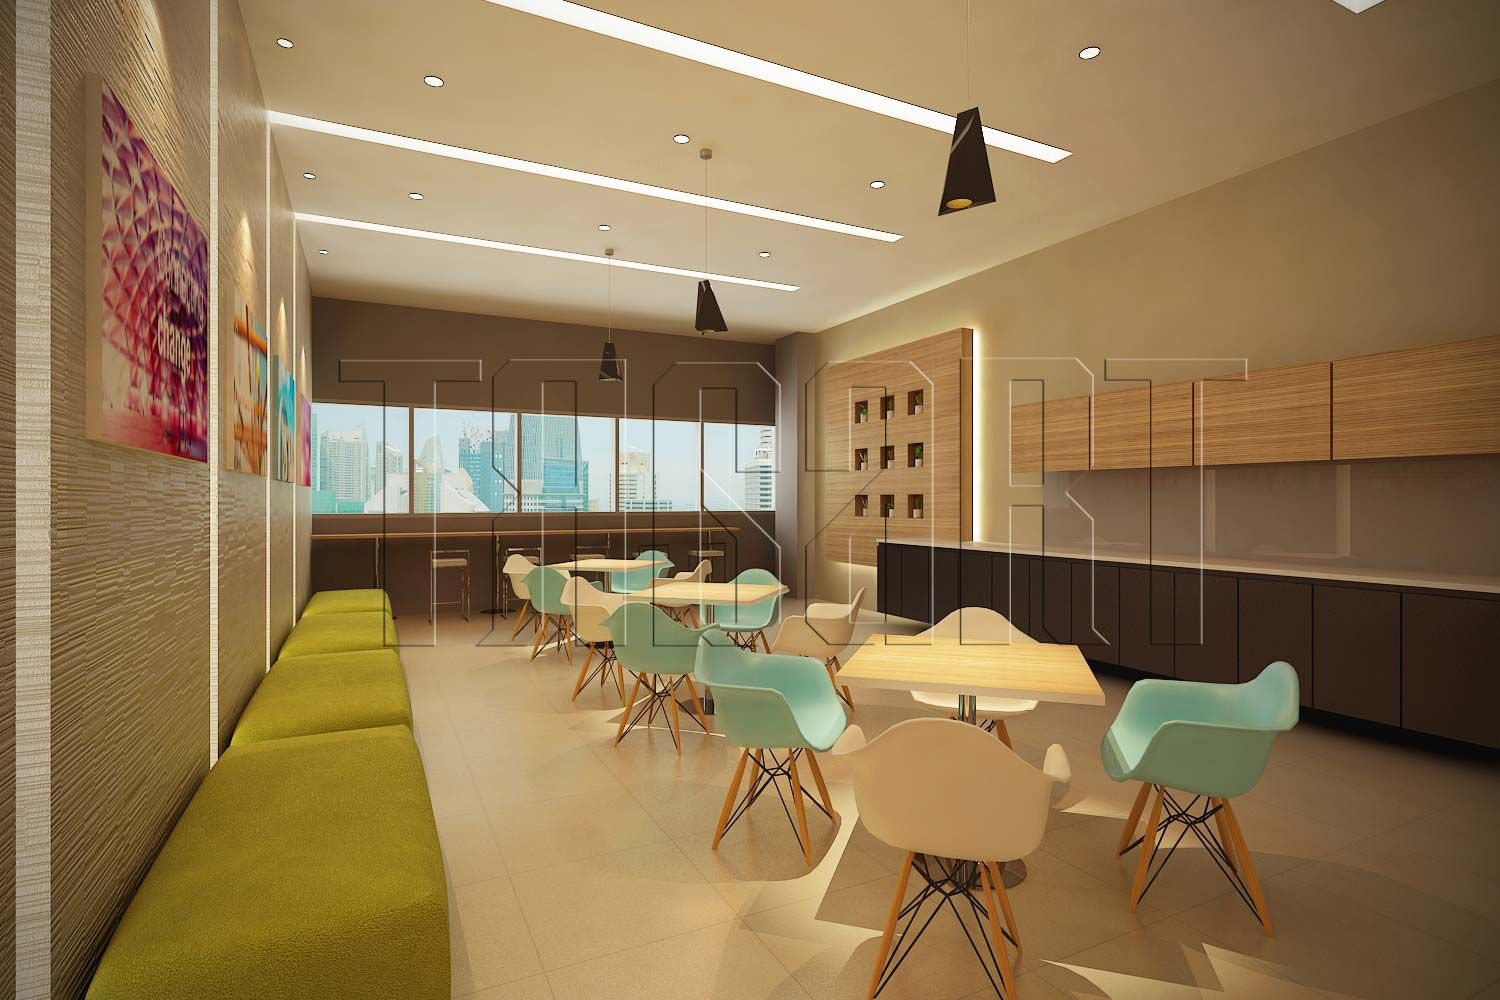 A simple office pantry interior design by traart private for Office interior design ideas singapore